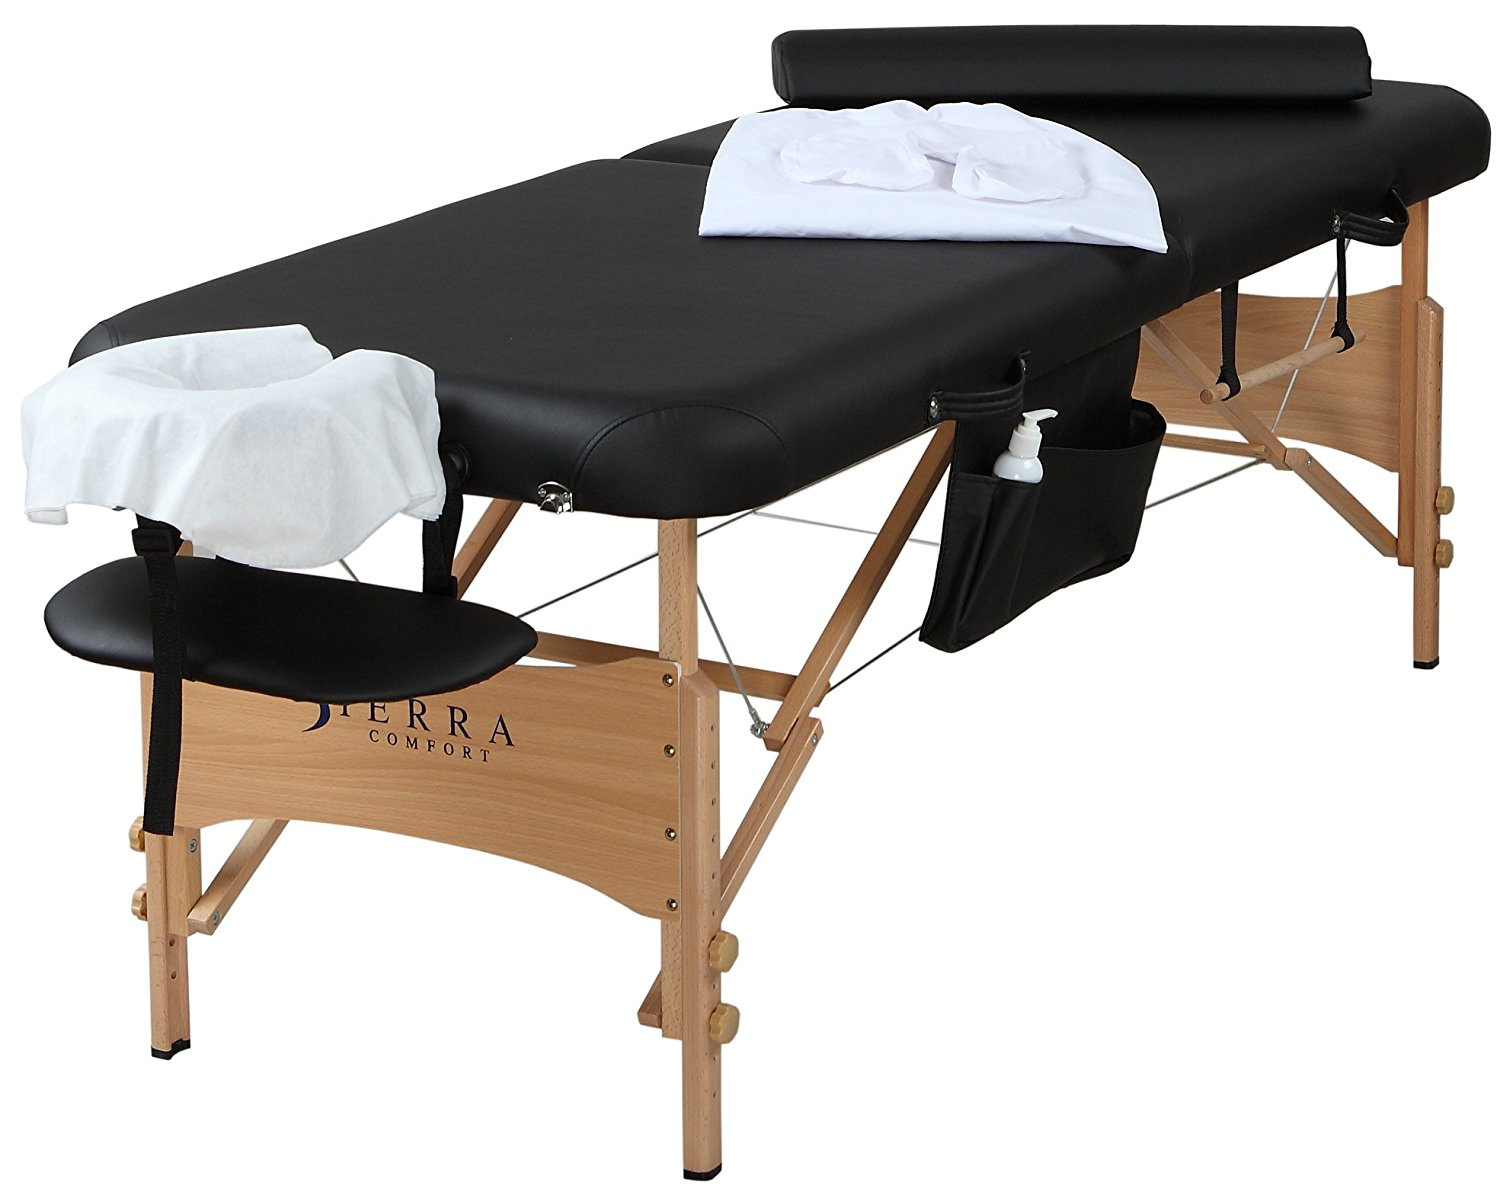 Sierra Comfort All-Inclusive Portable Massage Table with New Accessory Package, Black